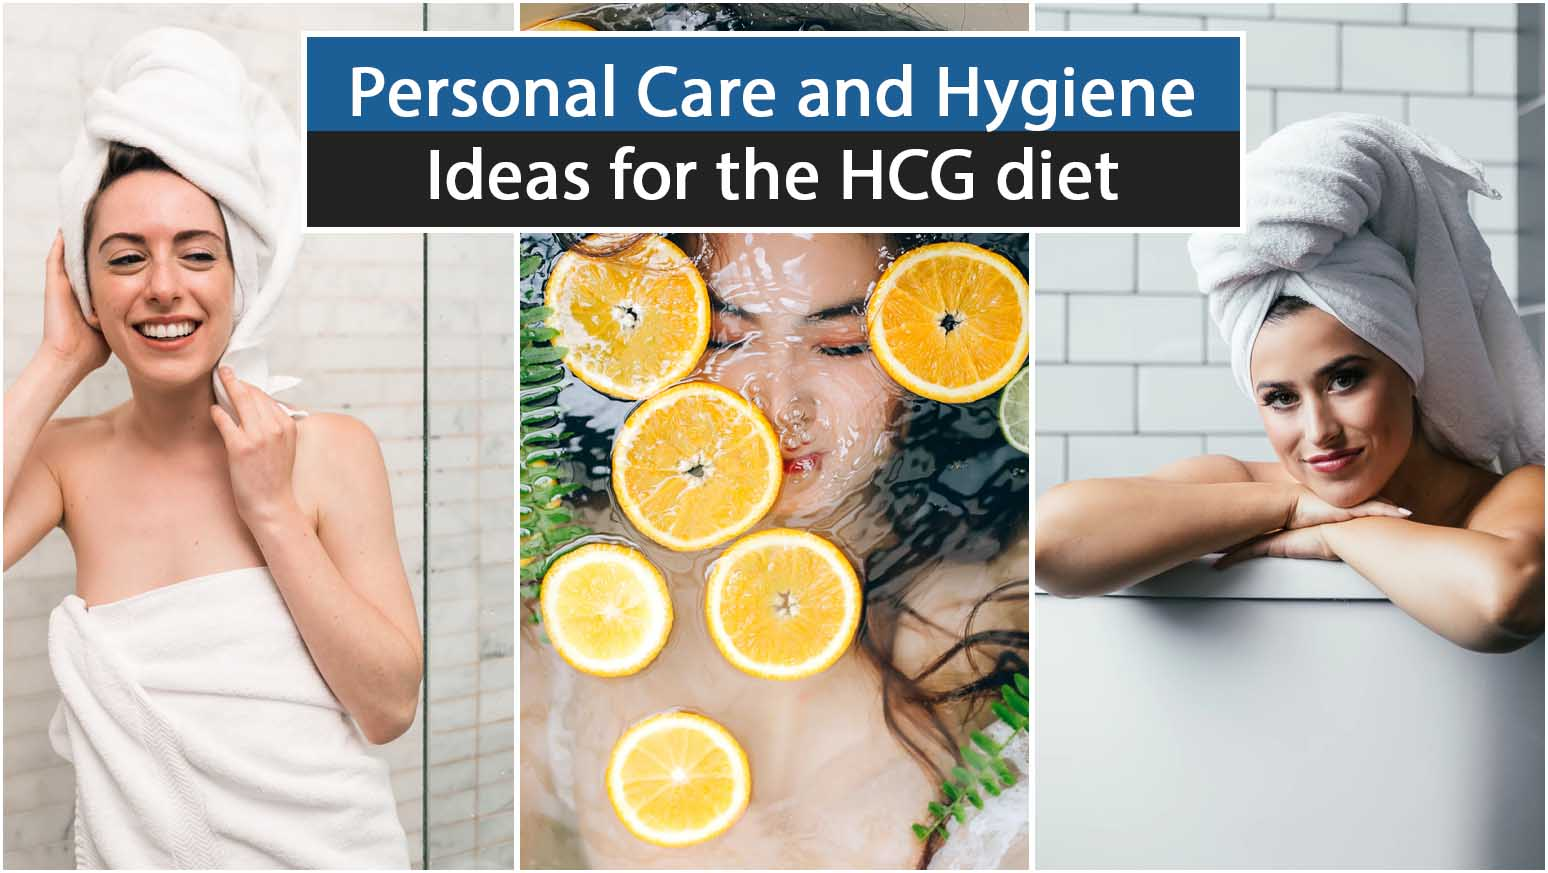 Personal Care and Hygiene Ideas for the HCG diet